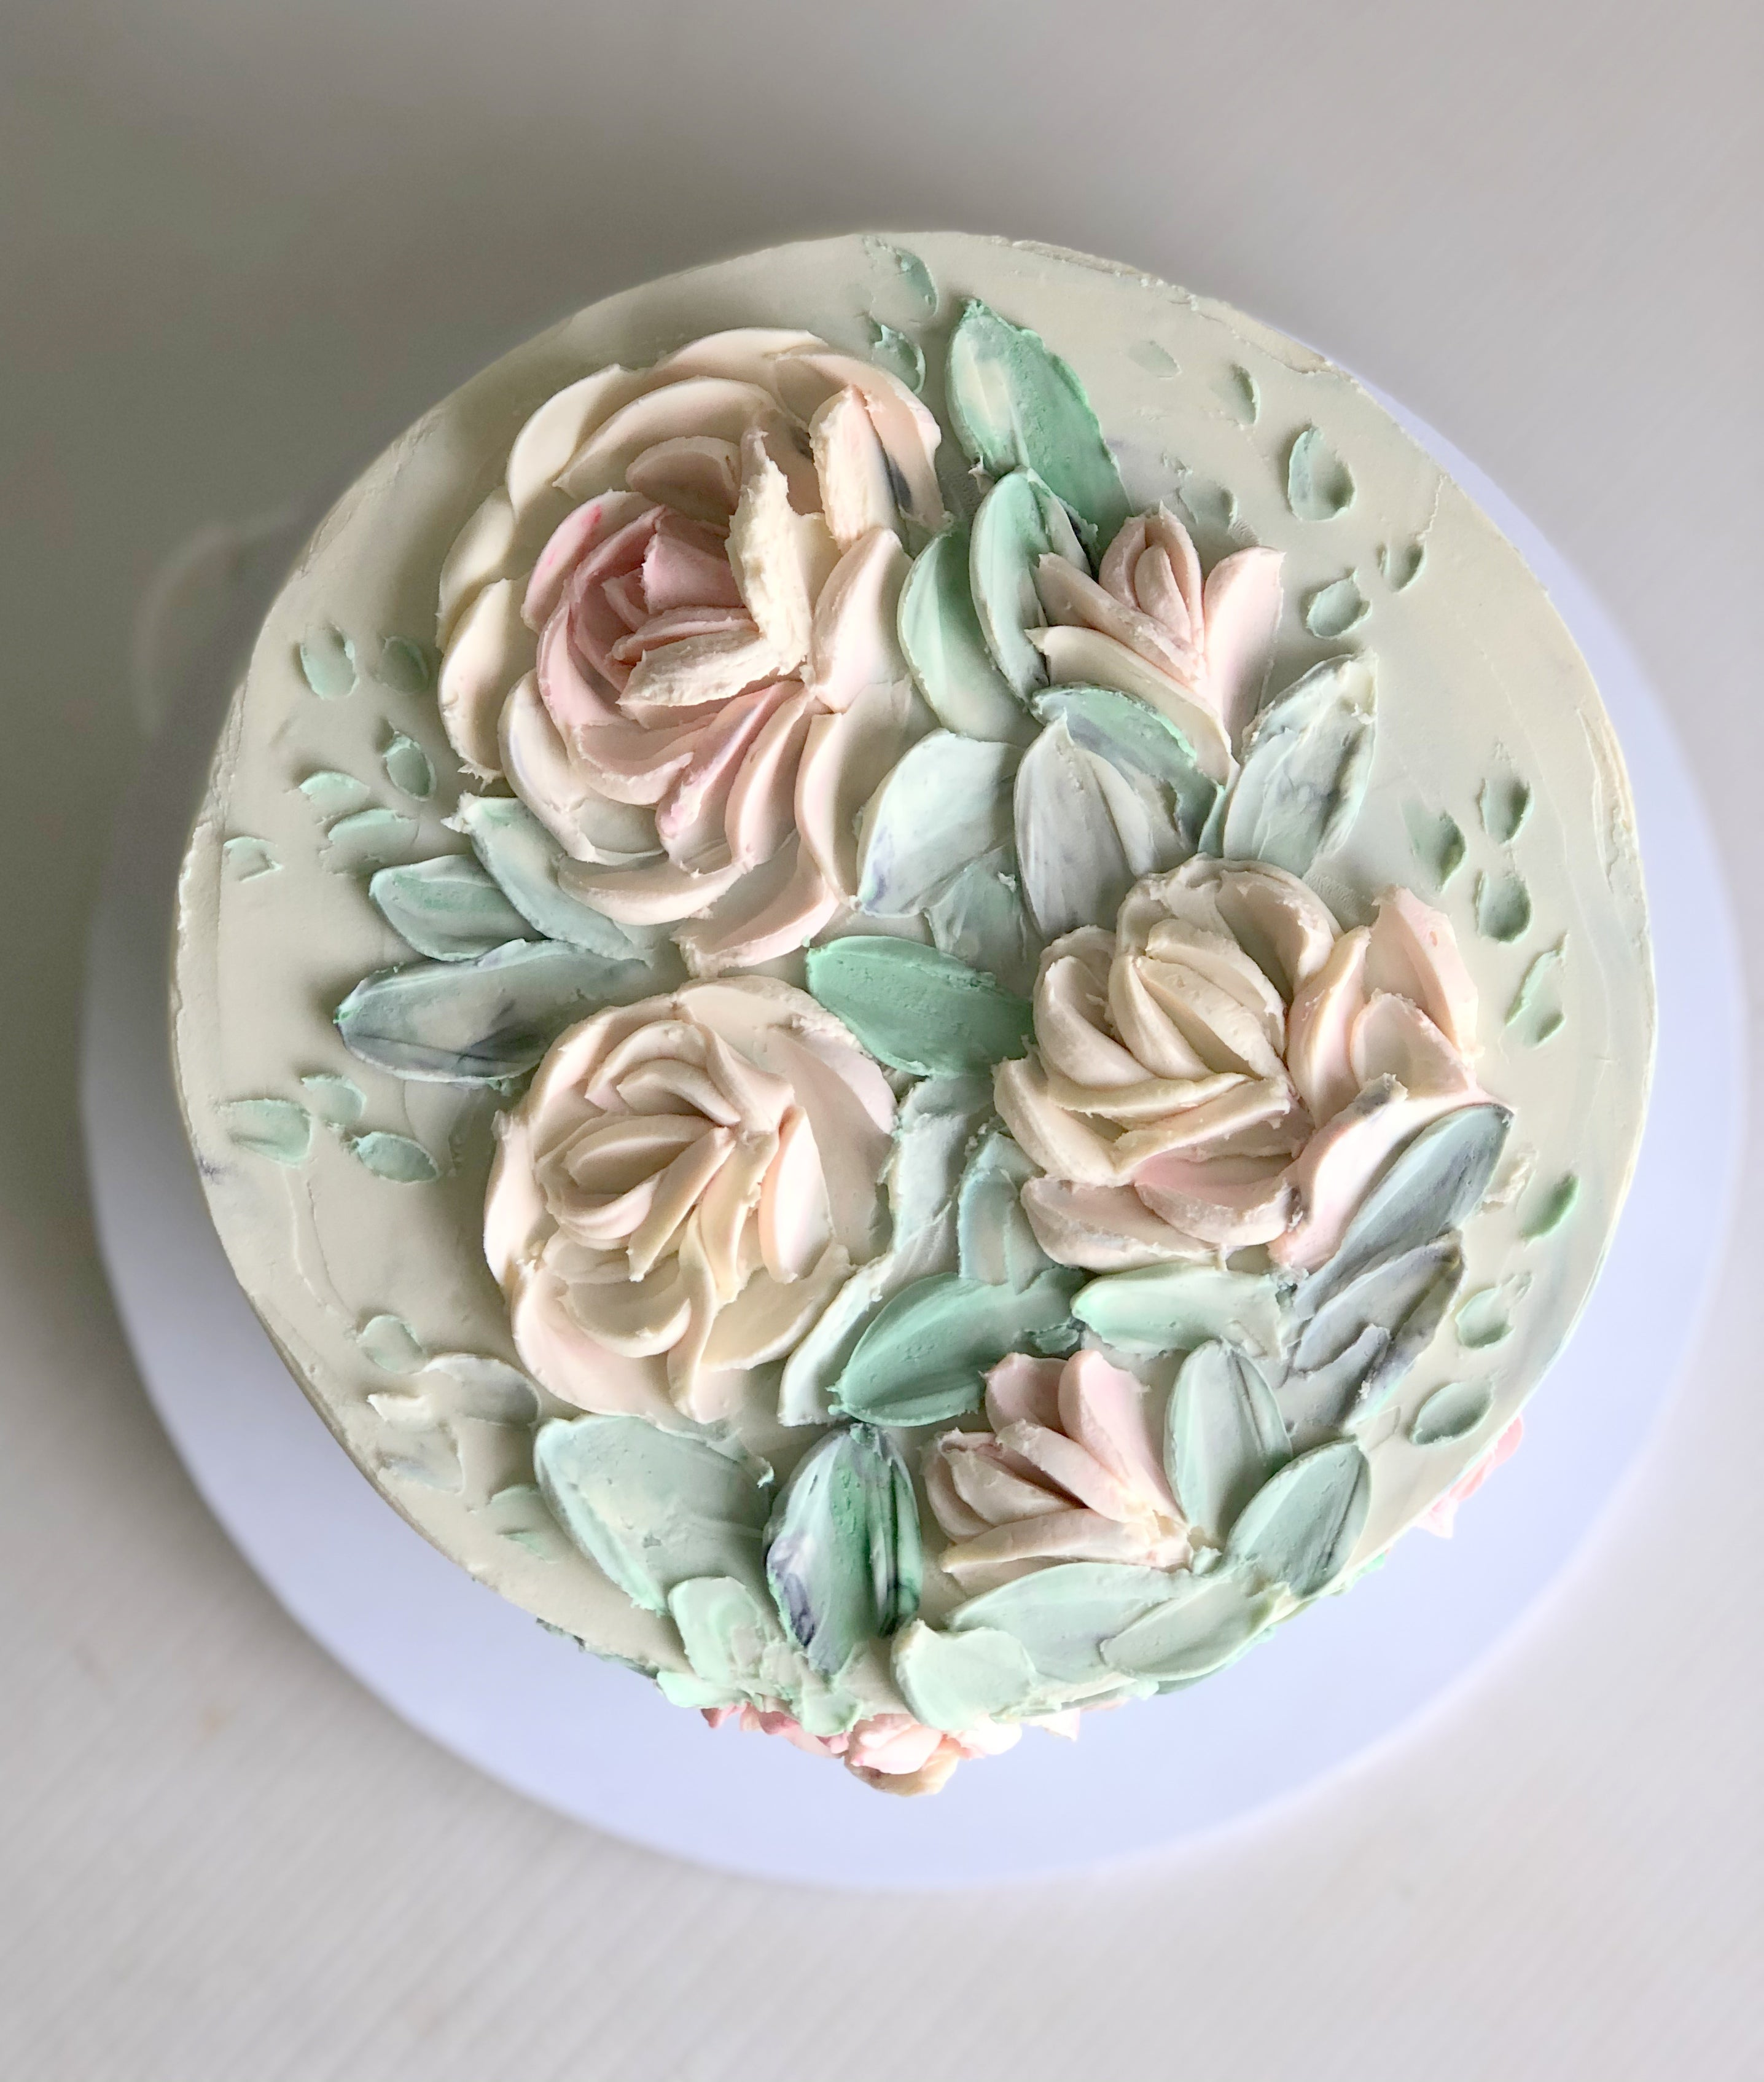 "Mothers day - 6"" round ganache flowers cake (serves 5-12)"